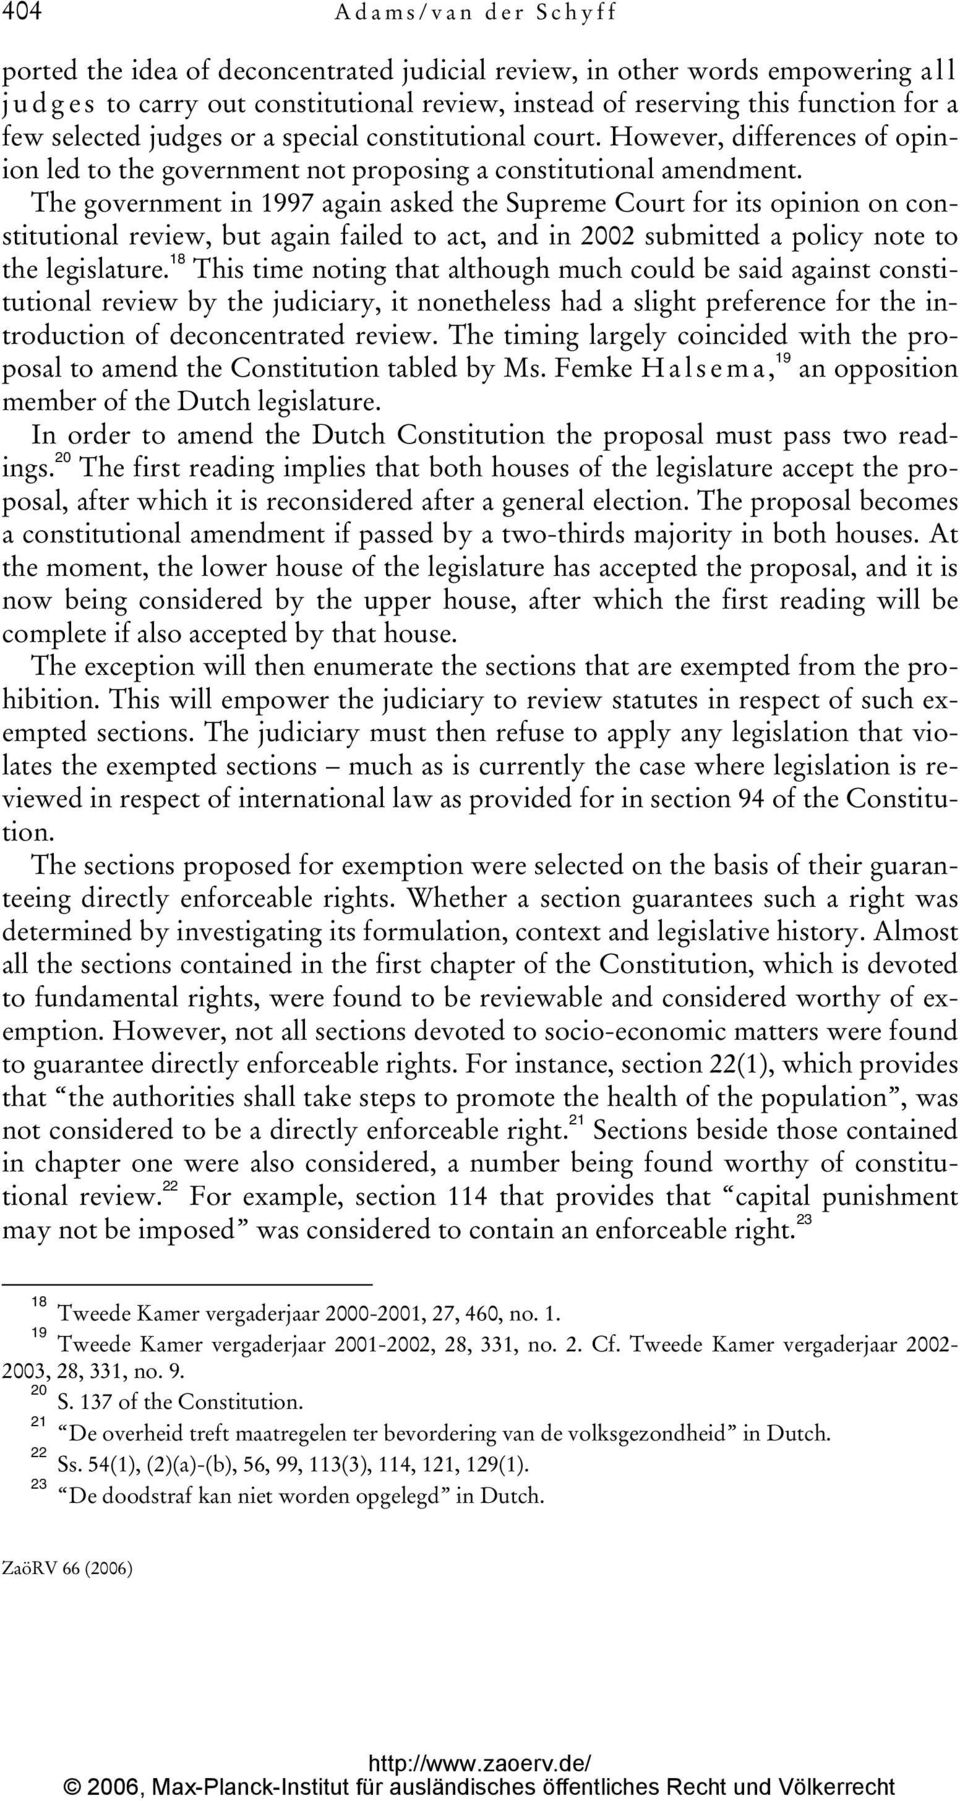 The government in 1997 again asked the Supreme Court for its opinion on constitutional review, but again failed to act, and in 2002 submitted a policy note to the legislature.